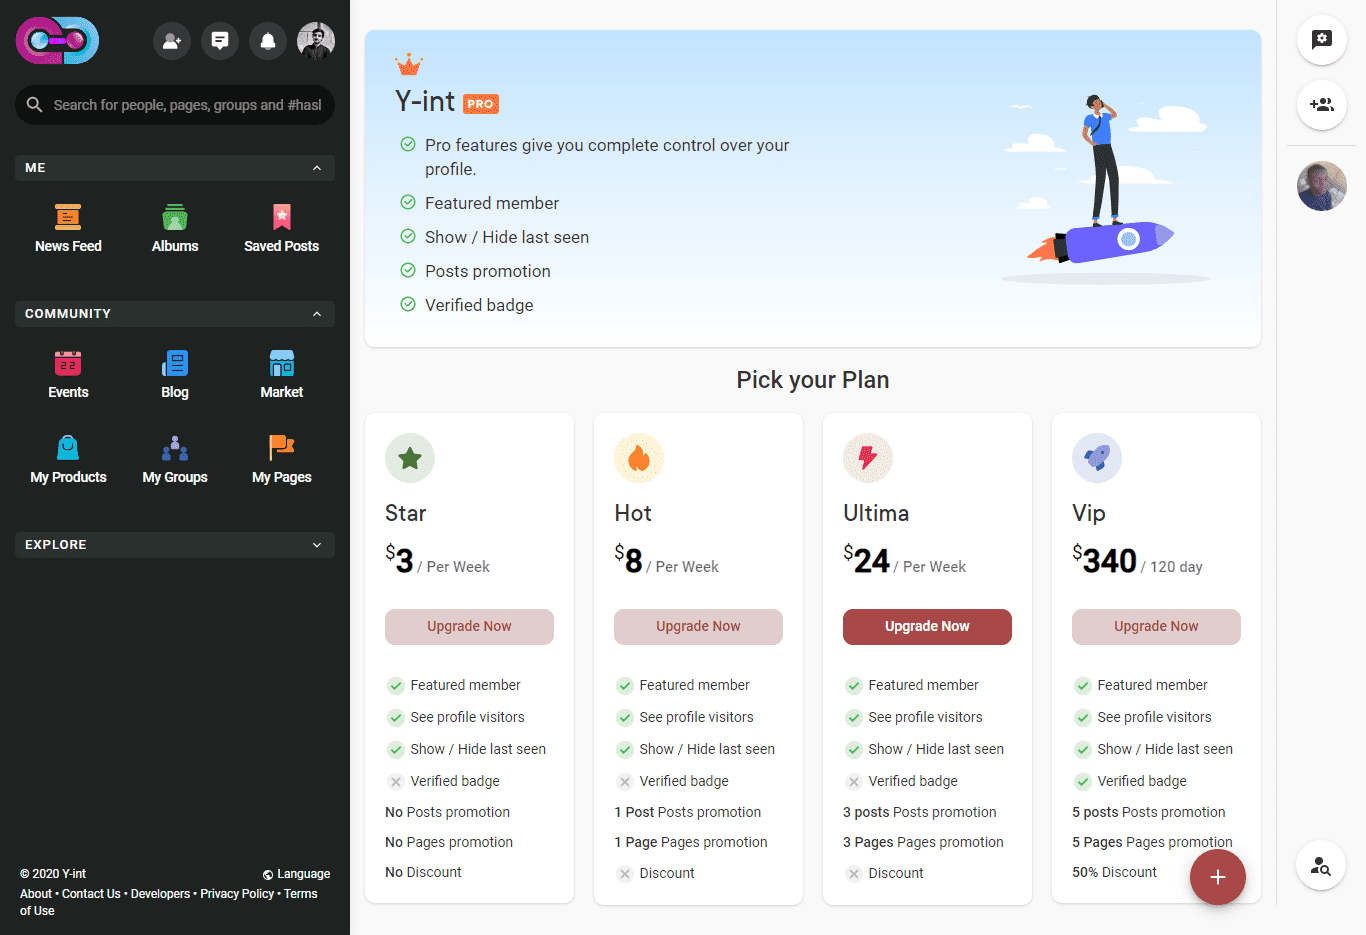 Yint Network Pricing